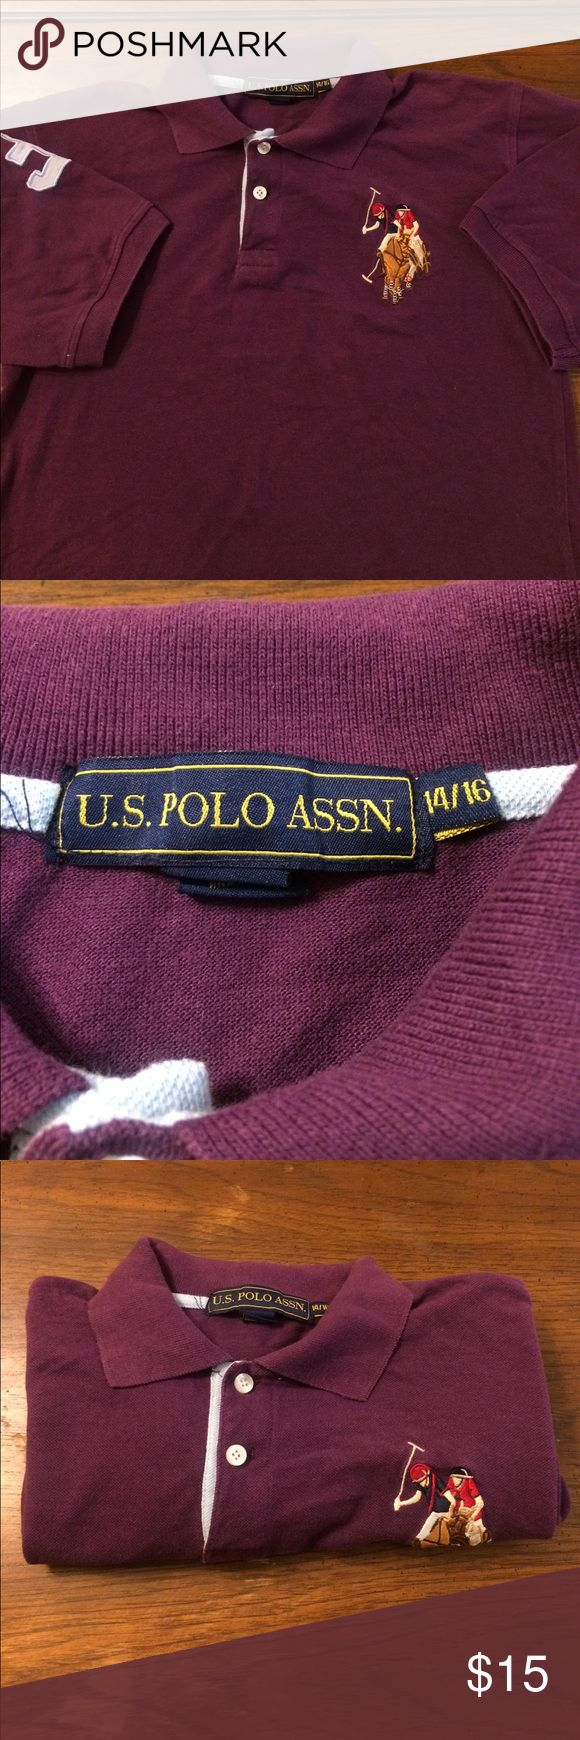 Boys 14/16 u.s polo assn. purple polo shirt Great condition no holes no stains U.S. Polo Assn. Shirts & Tops Polos